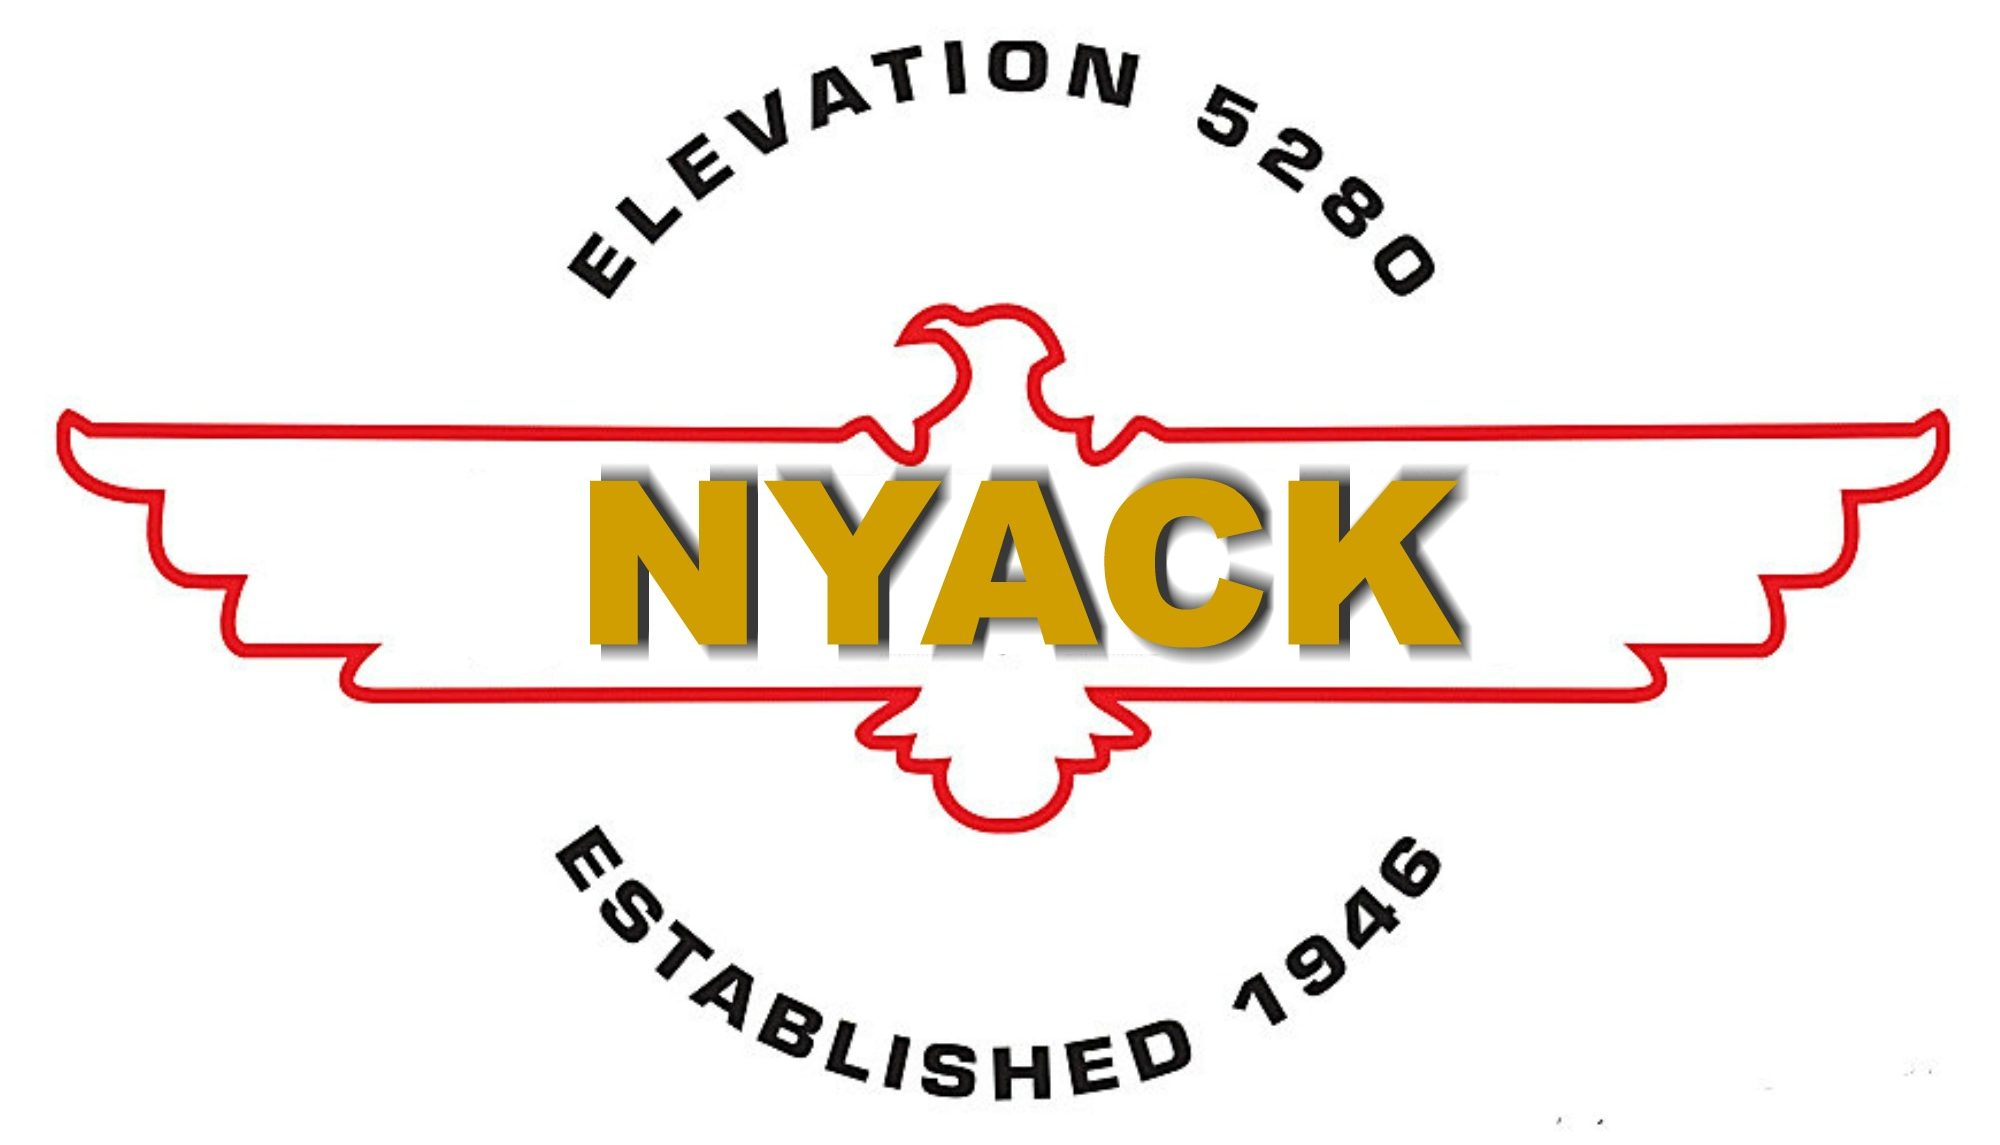 Nyack Shell - Emigrant Gap